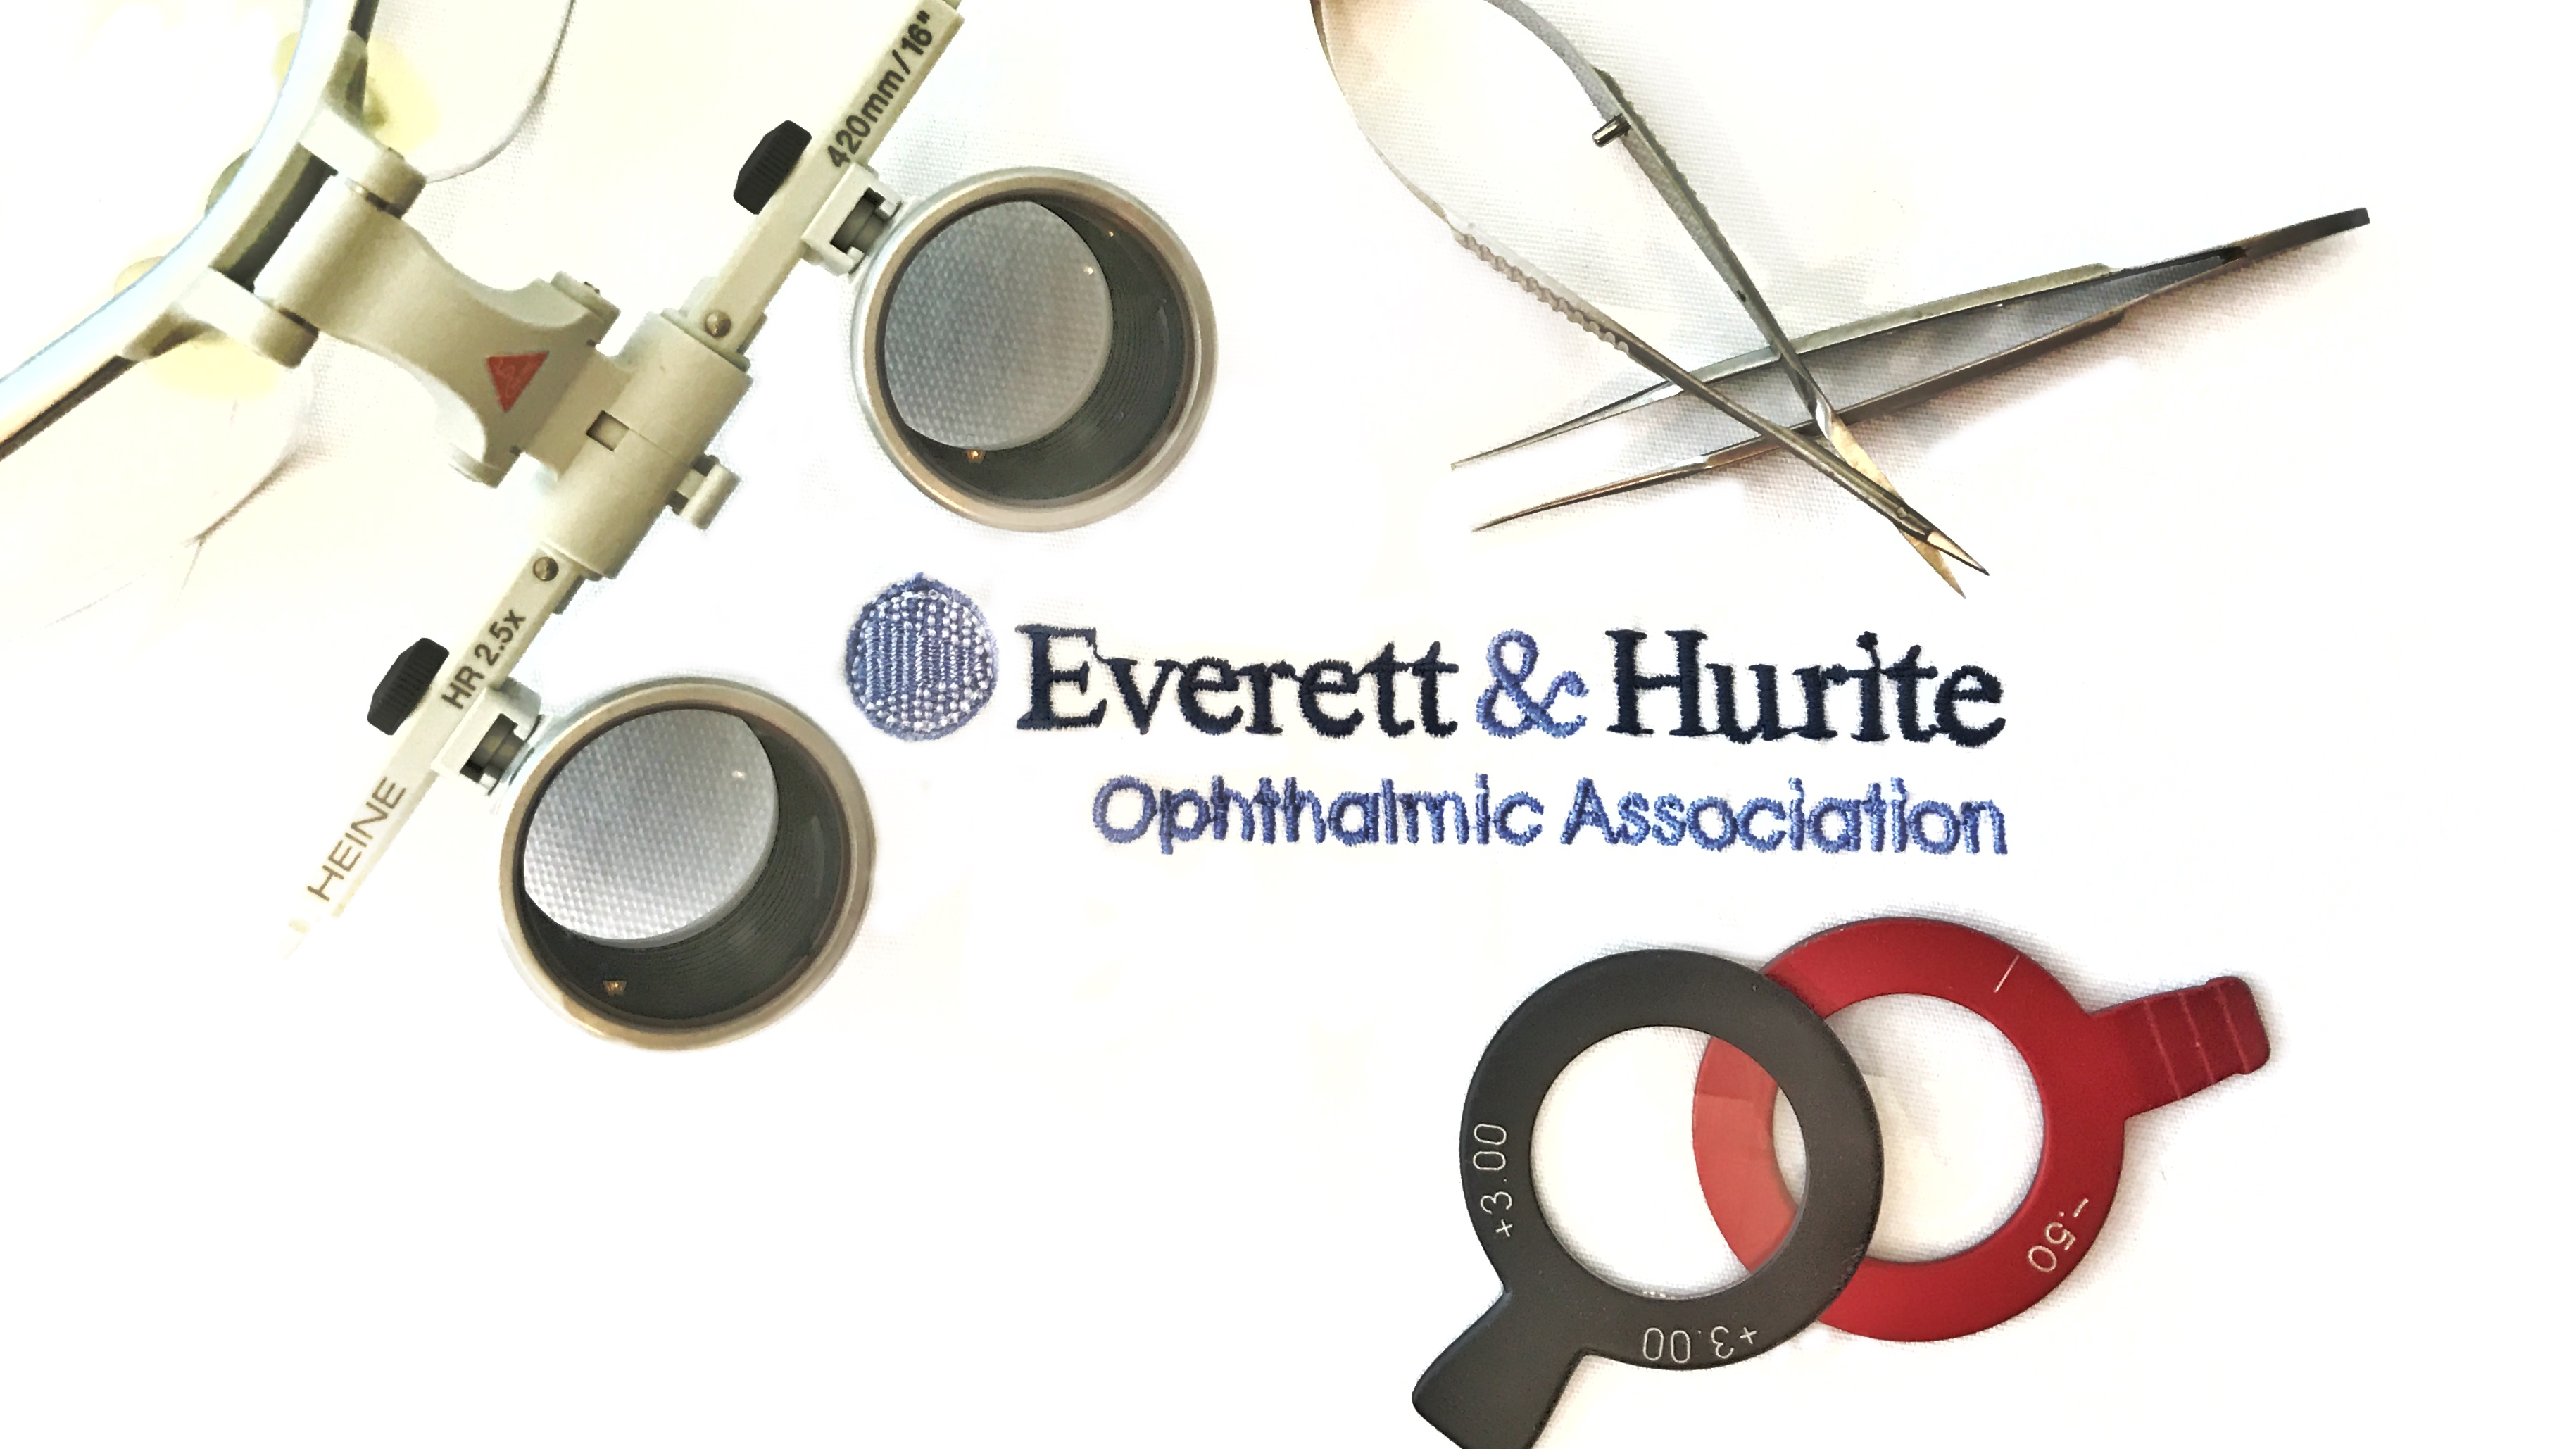 Everett & Hurite Ophthalmic Association Banner